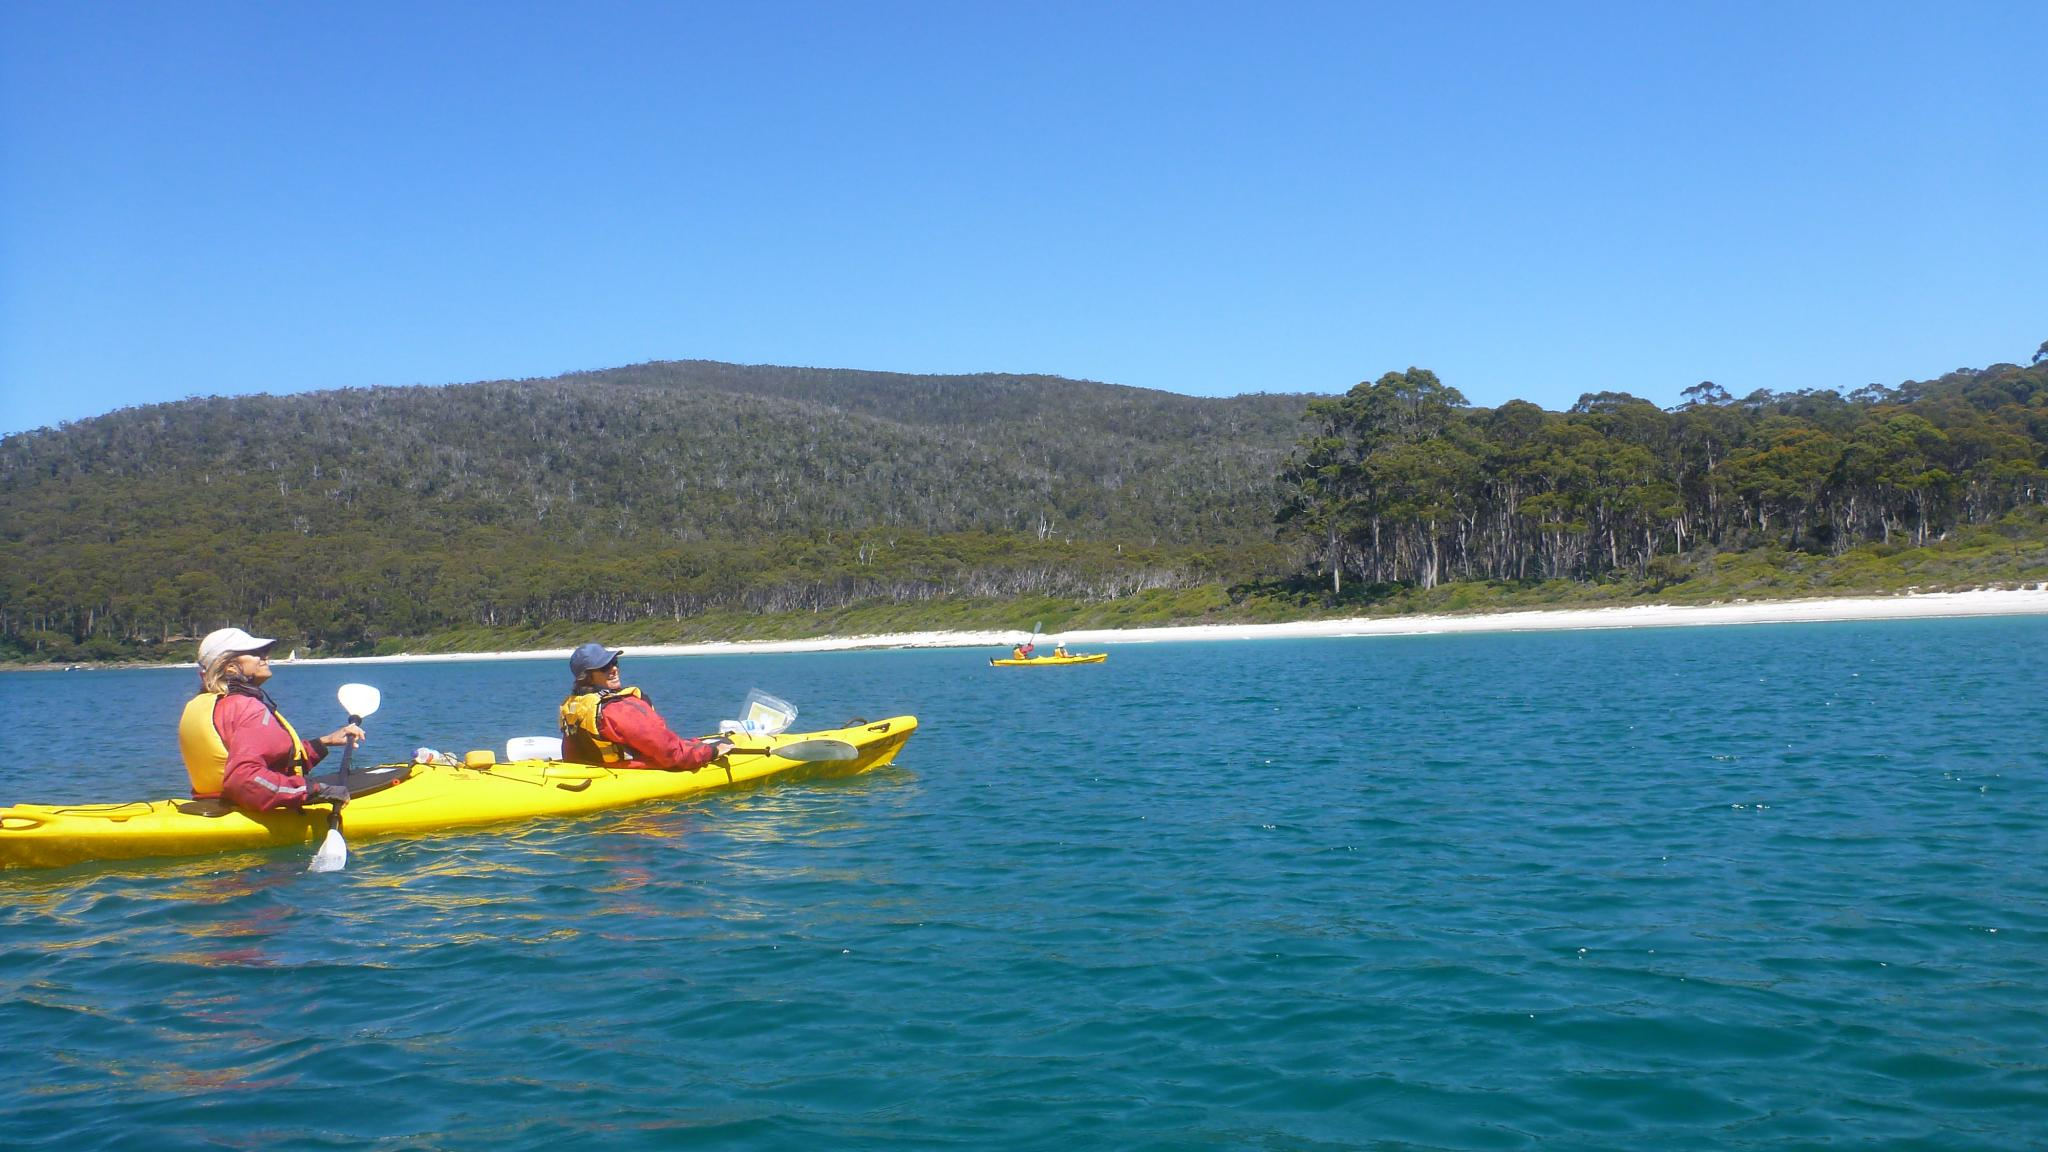 Roaring 40s Kayaking - Sea kayak skills lessons to teach skills to increase your kayak abilities